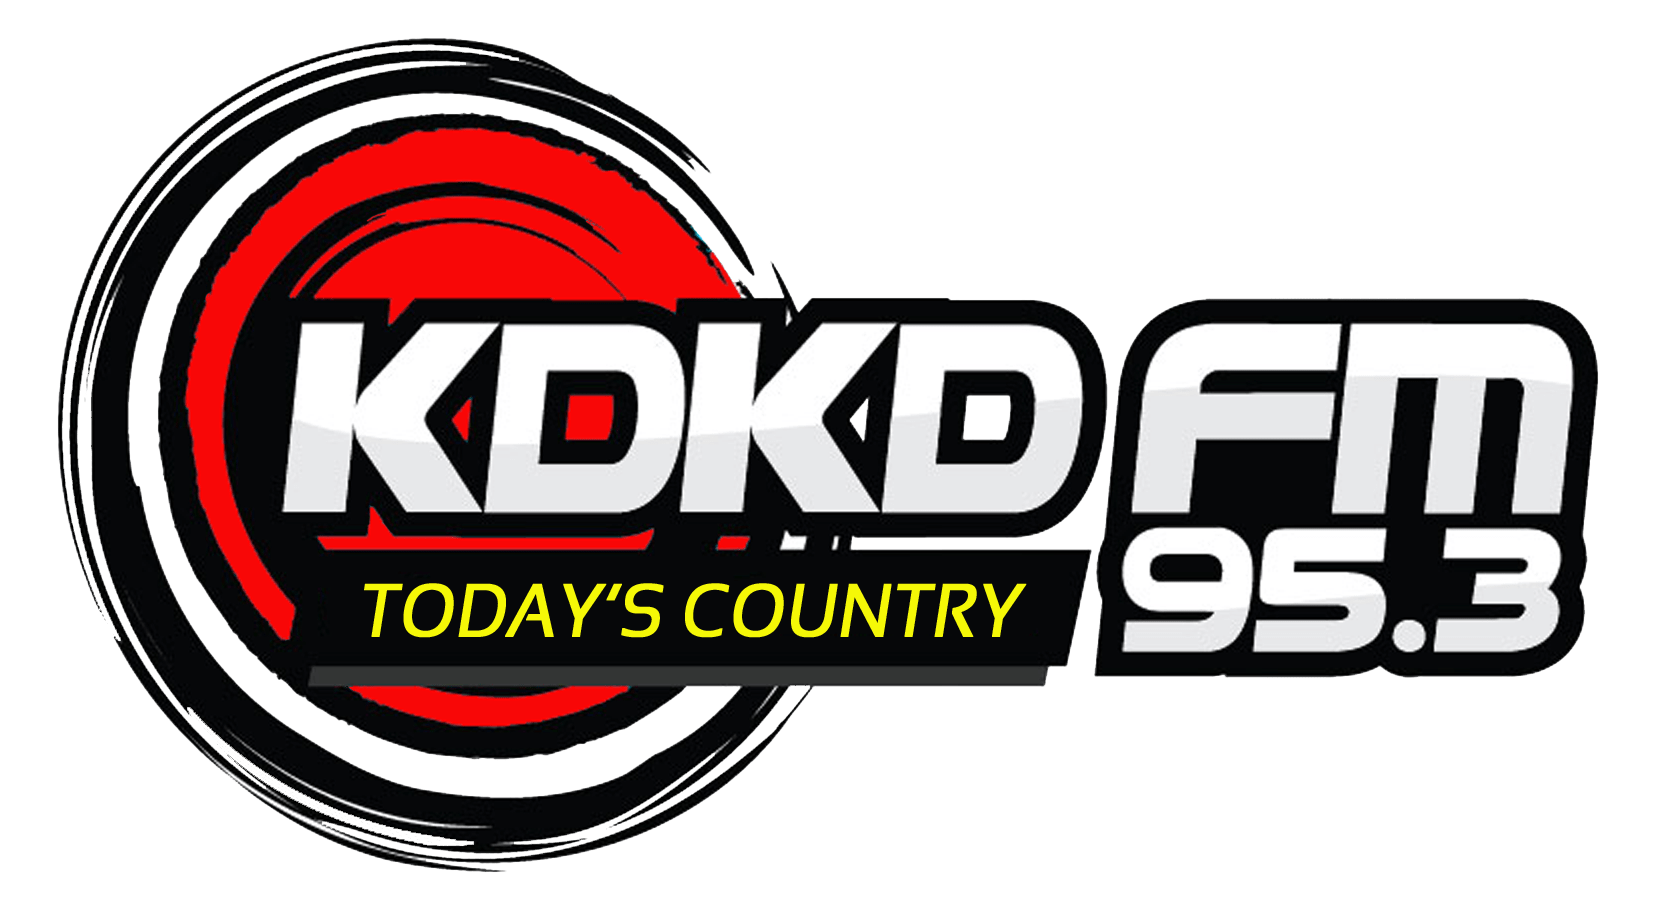 Area Injury Accidents and Arrests from the MSHP | 95 3 KDKD